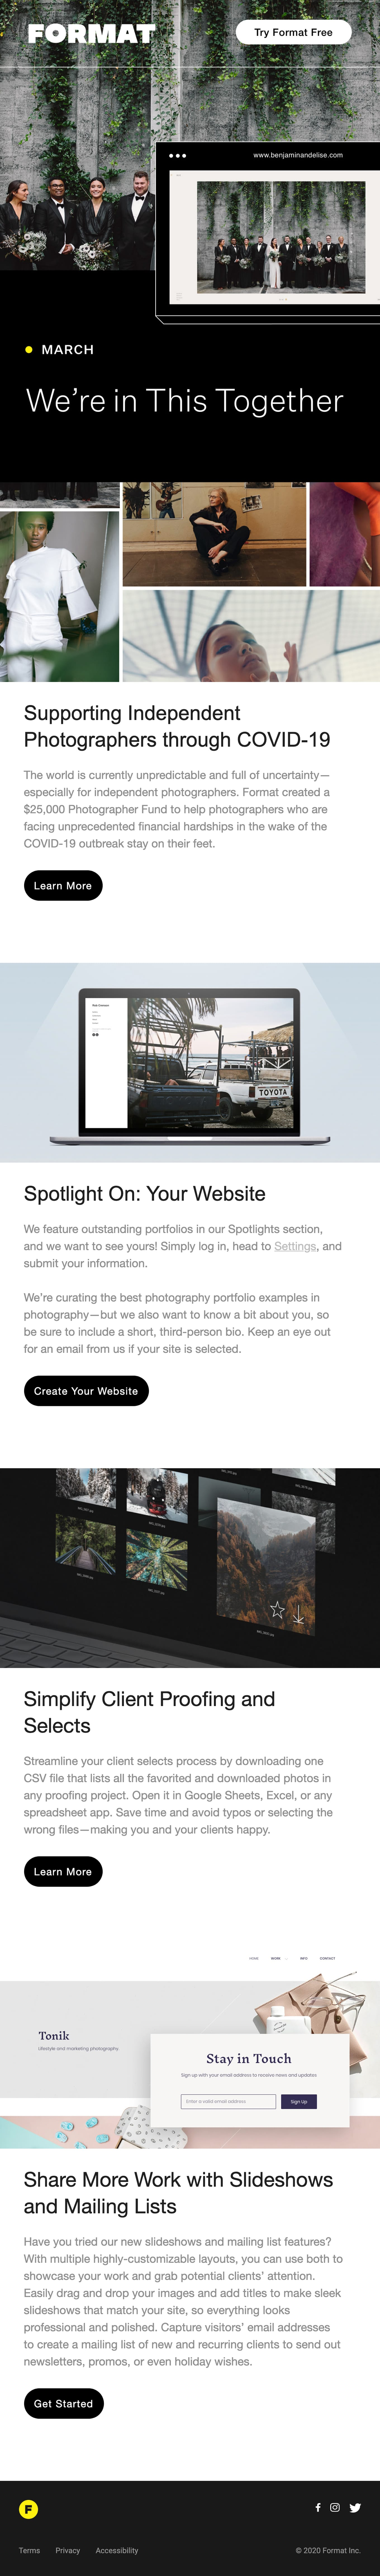 New Fund to Support Photographers Email Screenshot